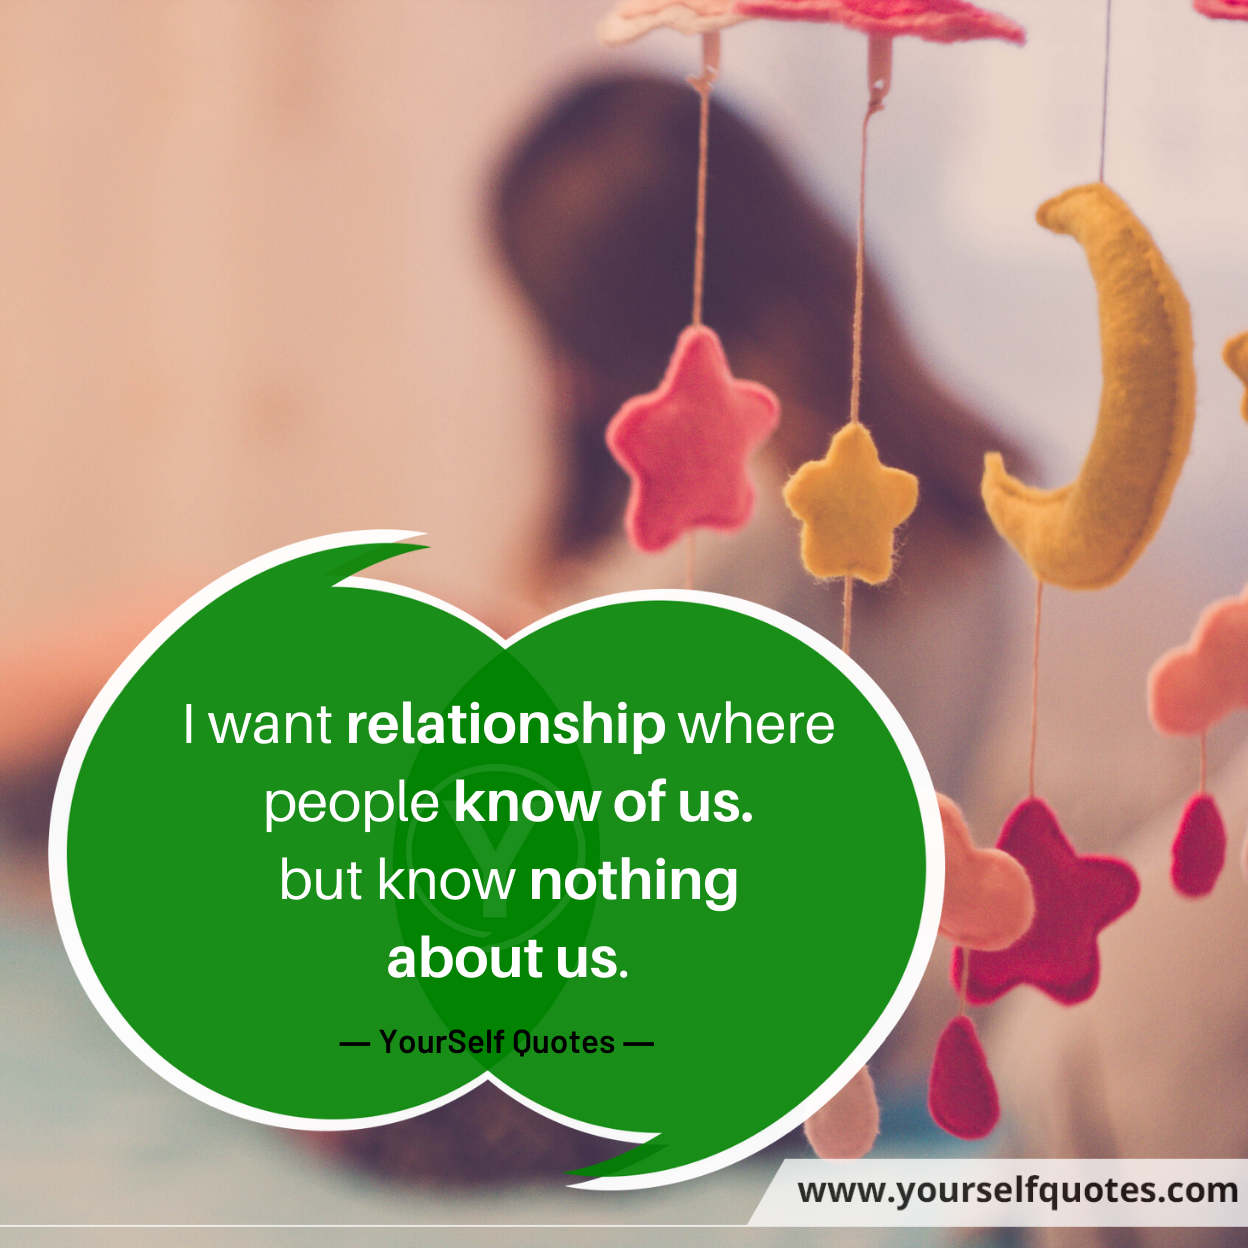 About Relationship Quotes